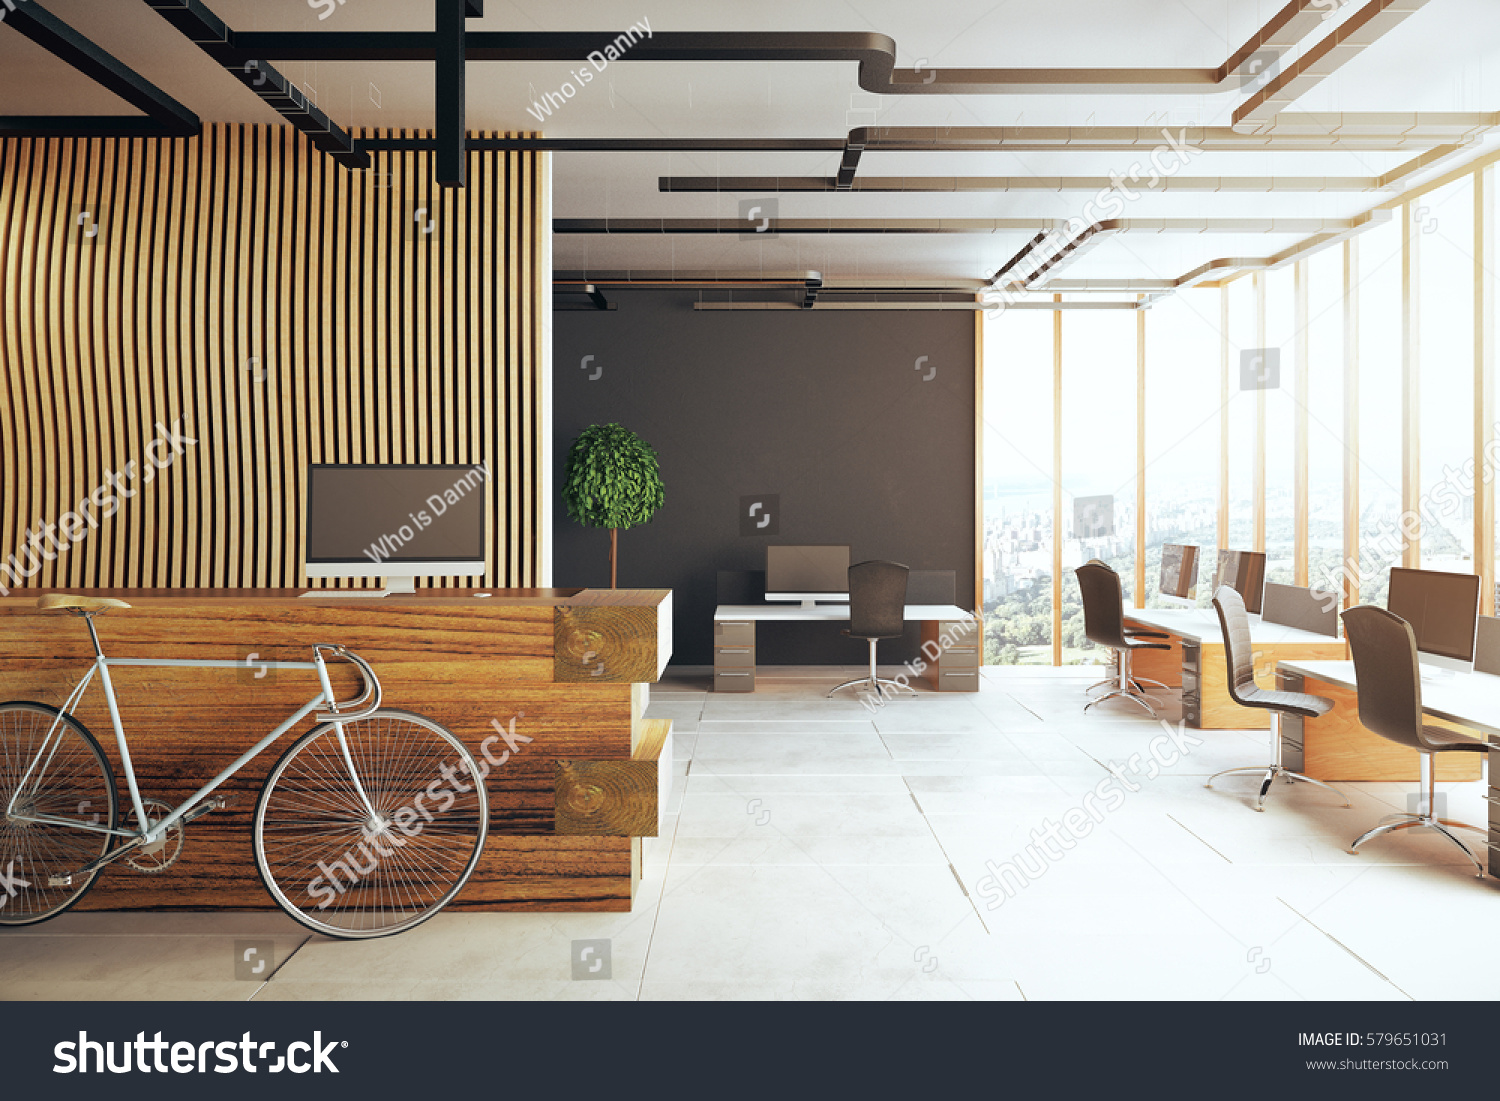 creative office ceiling. Unique Ceiling Creative Office Interior With Bicycle Reception Desk Several Desks  Computer Monitors And Panoramic Inside Office Ceiling I